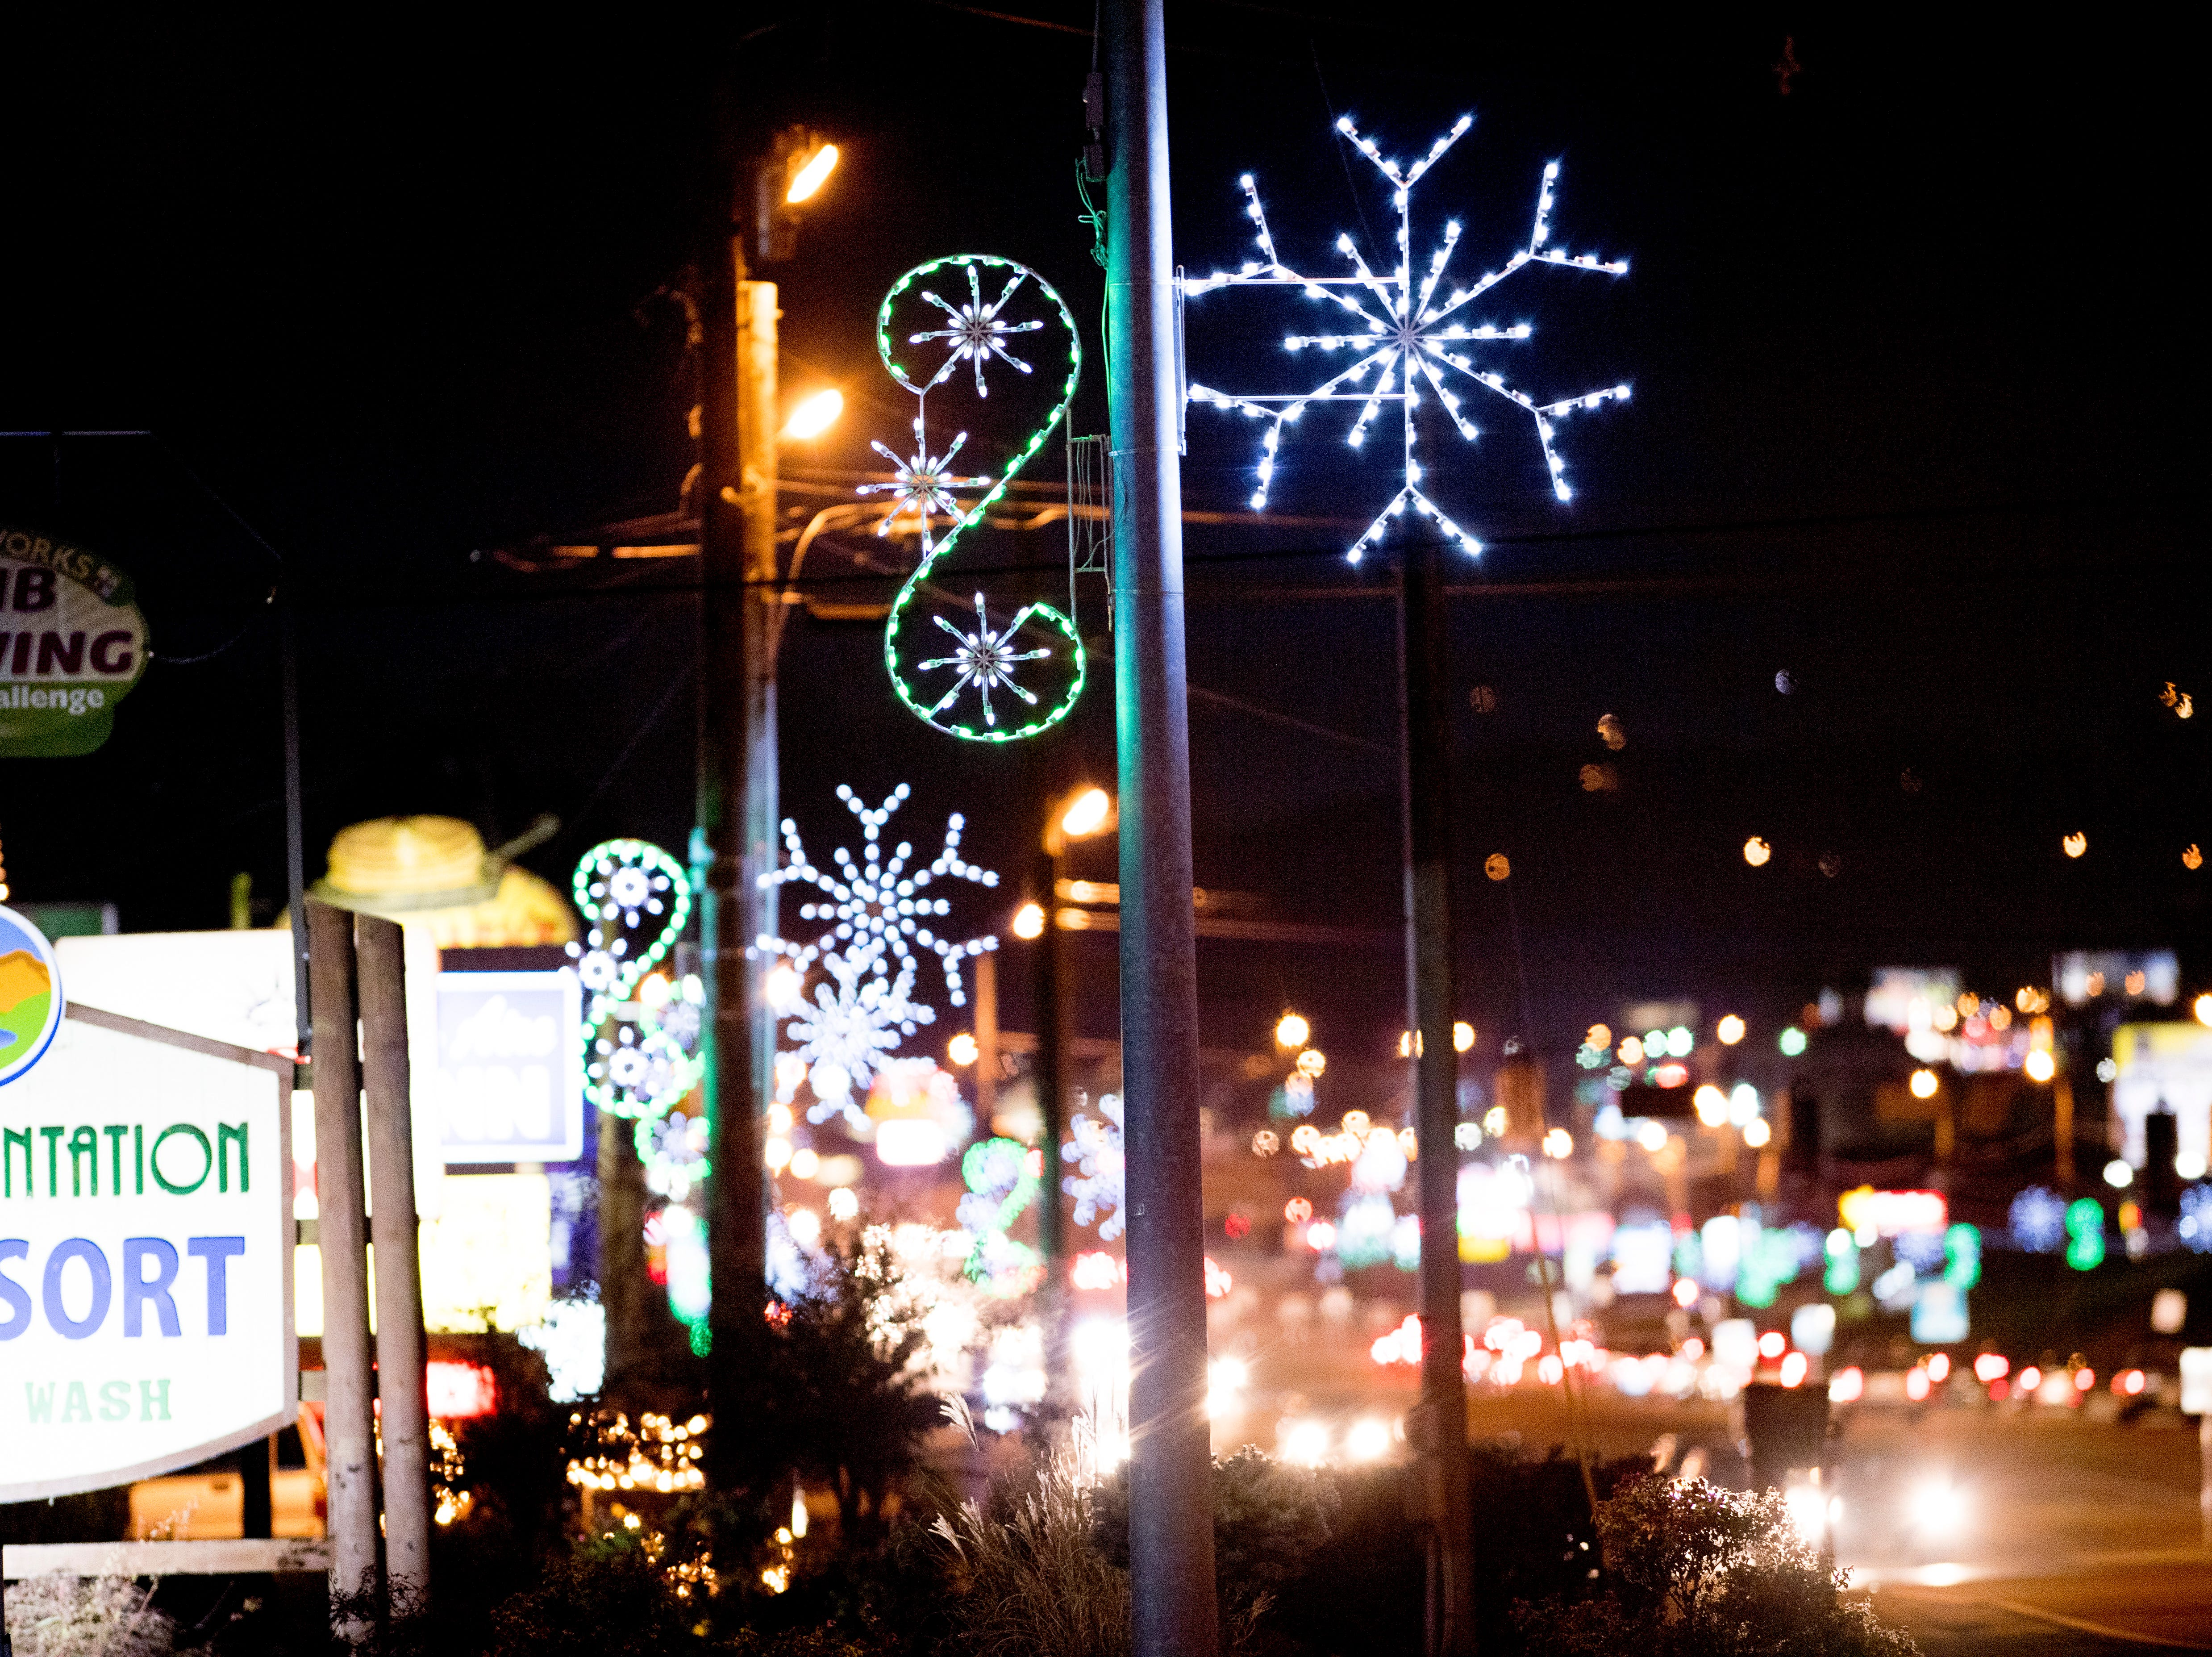 Snowflake lighting fixtures can be seen all along the Parkway in Pigeon Forge, Tennessee on Friday, November 16, 2018.